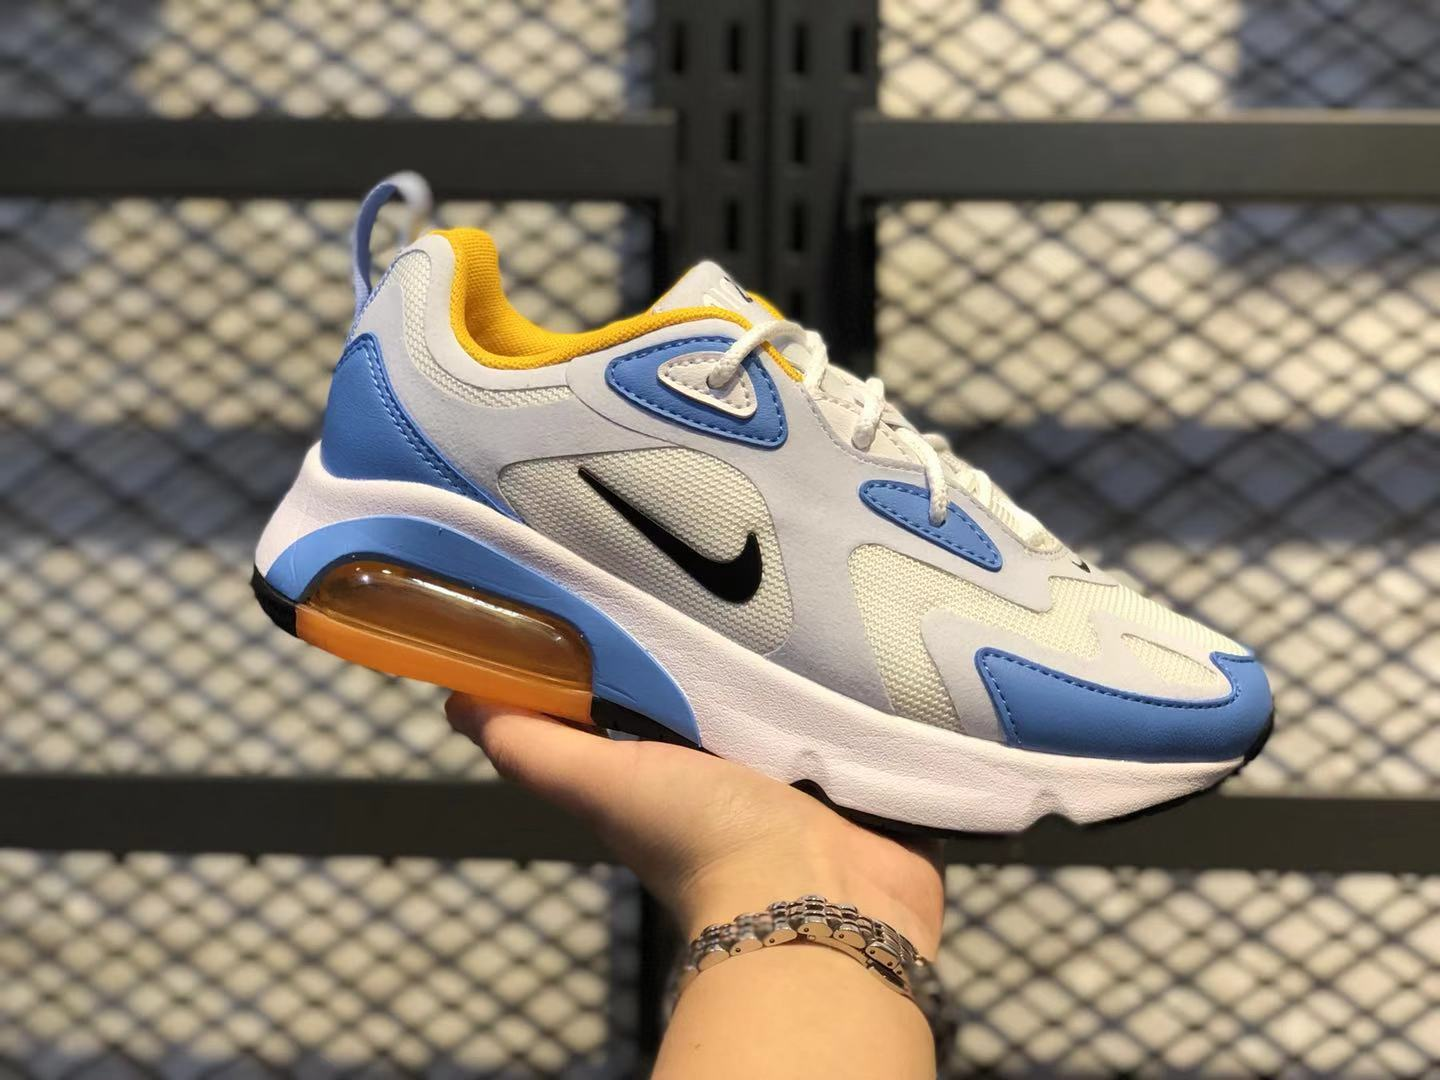 Nike Air Max 200 White/Black-Half Blue Women's Shoe In Stock AT6175-101